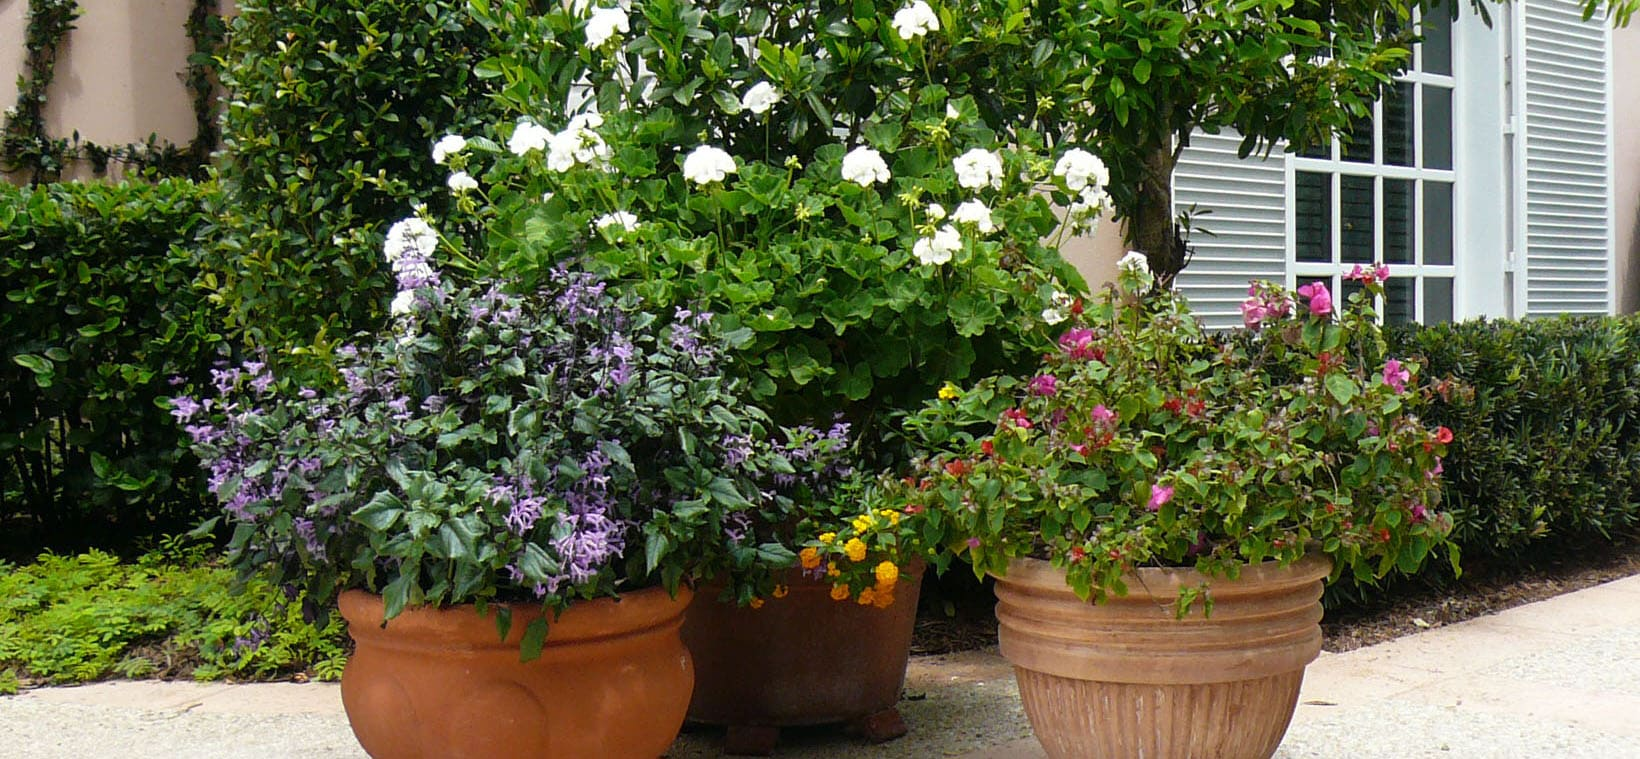 aiello-landscape_custom-potted-plants